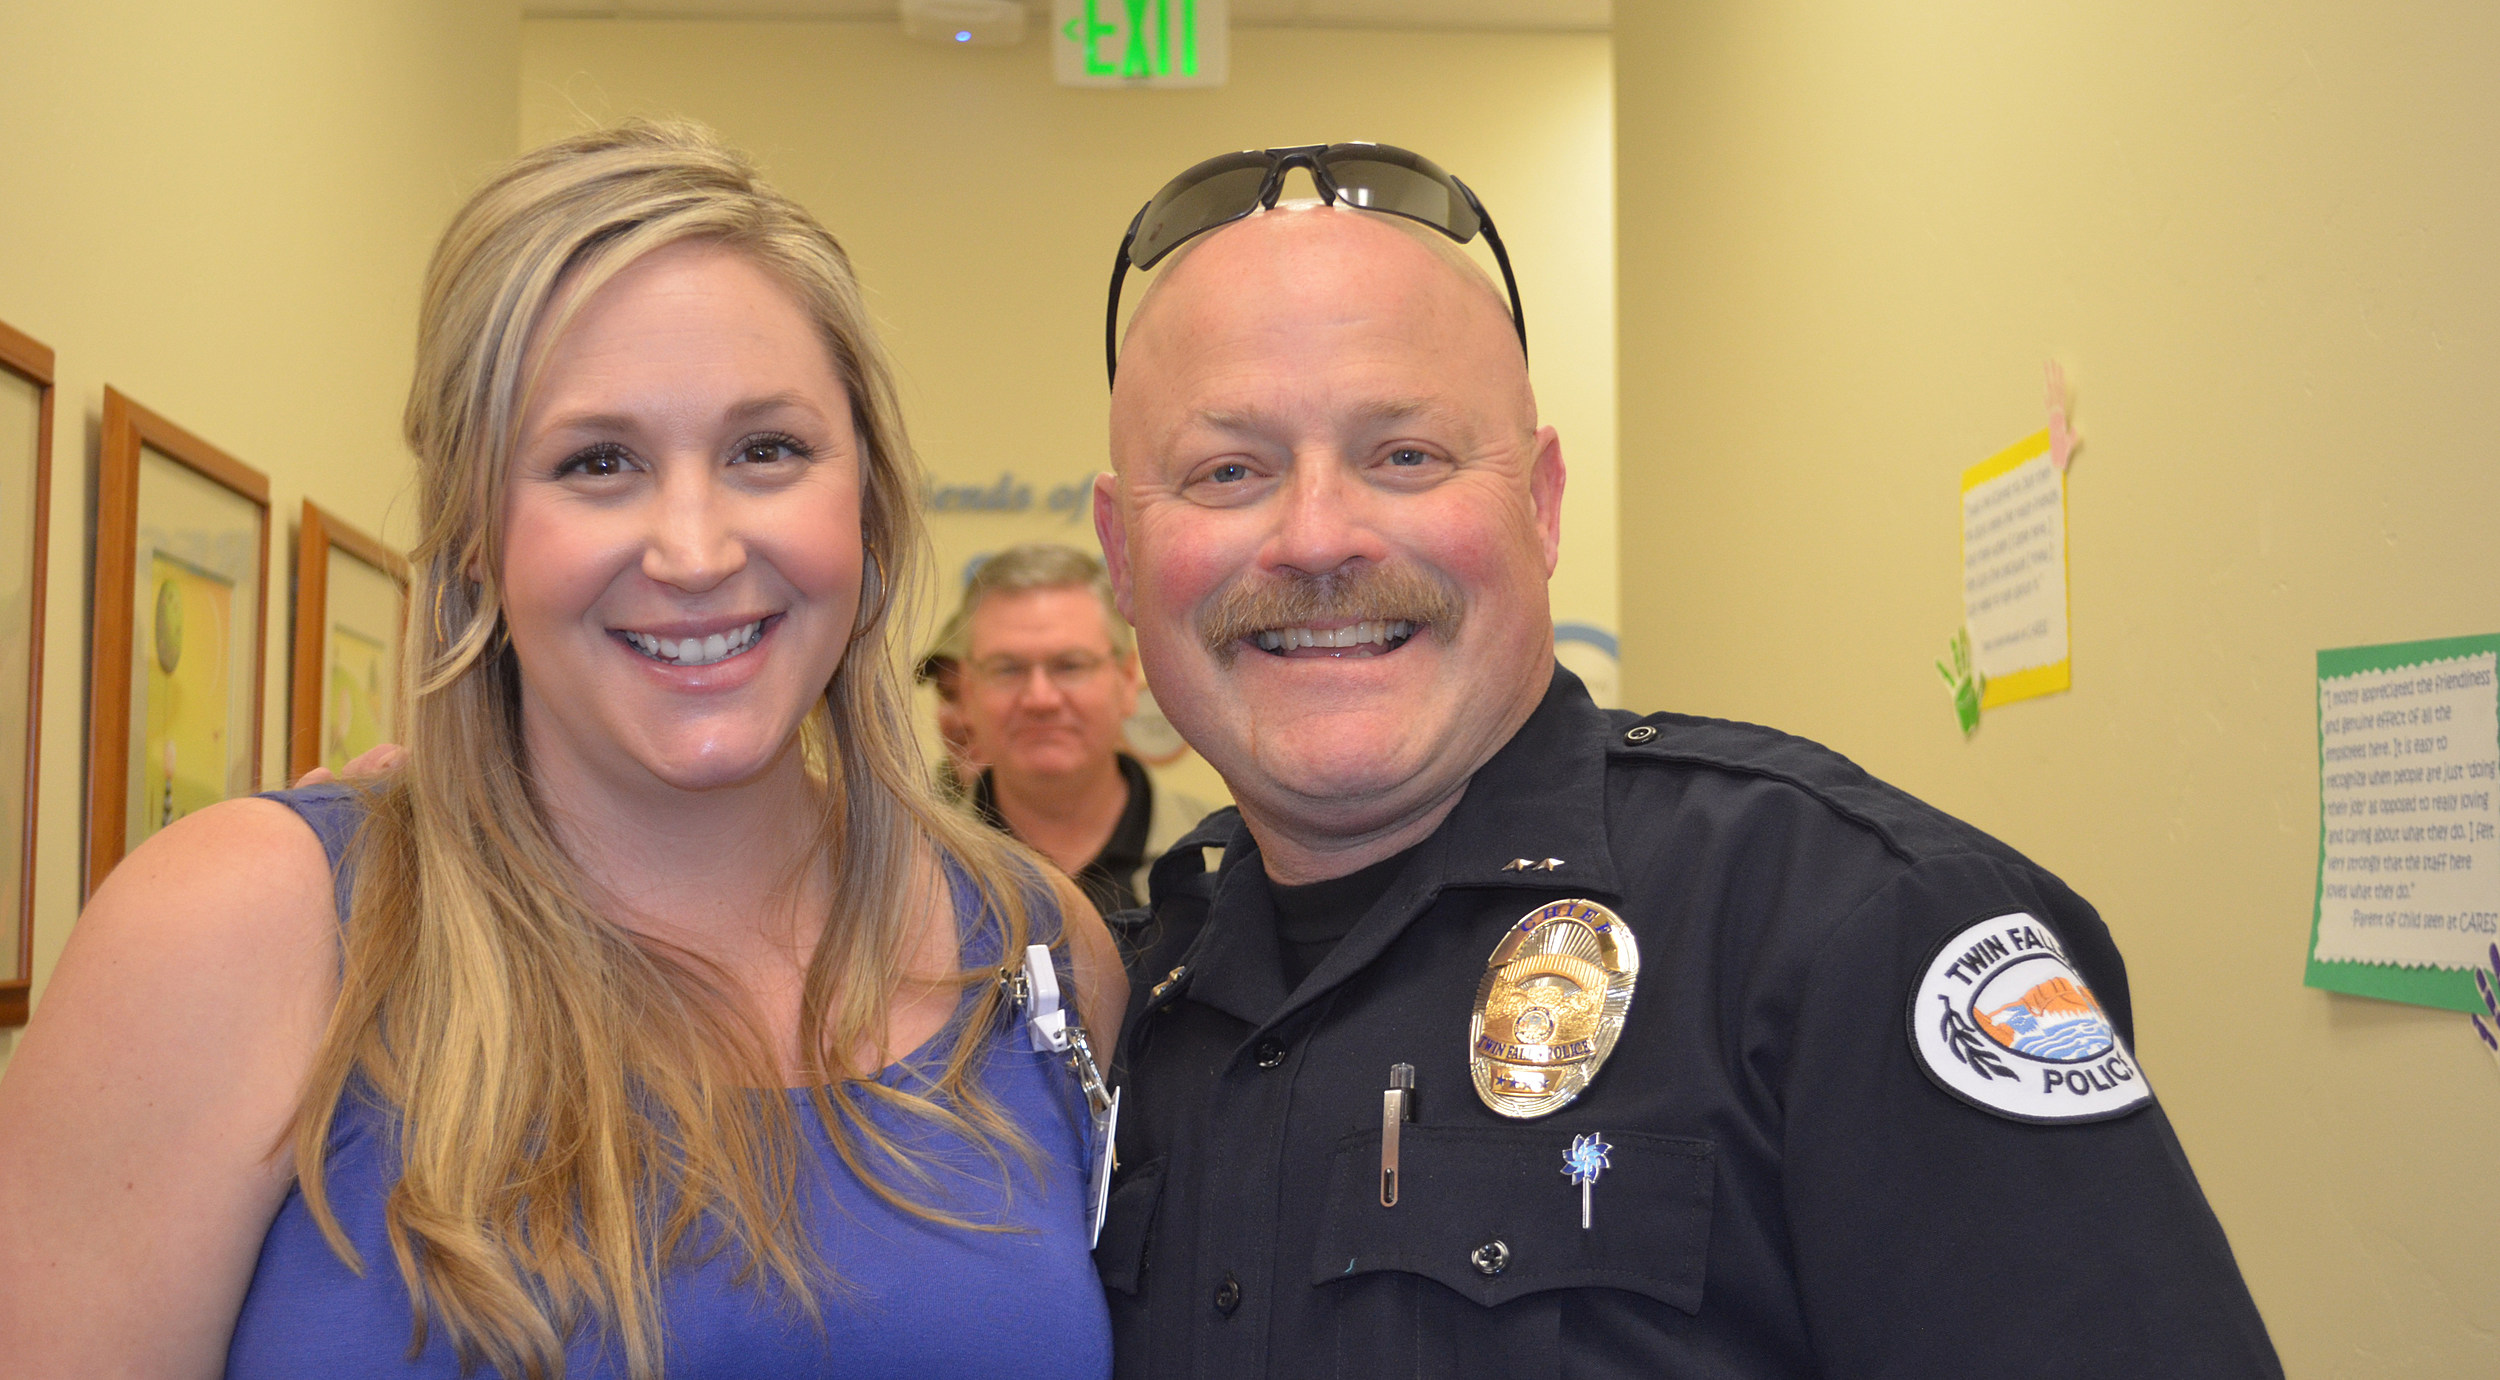 Anne Tierney, Coordinator, St. Luke's CARES Magic Valley, poses for a photo with Twin Falls Police Chief Craig Kingsbury. (Photo by Michelle Bartlome, St. Luke's Magic Valley)